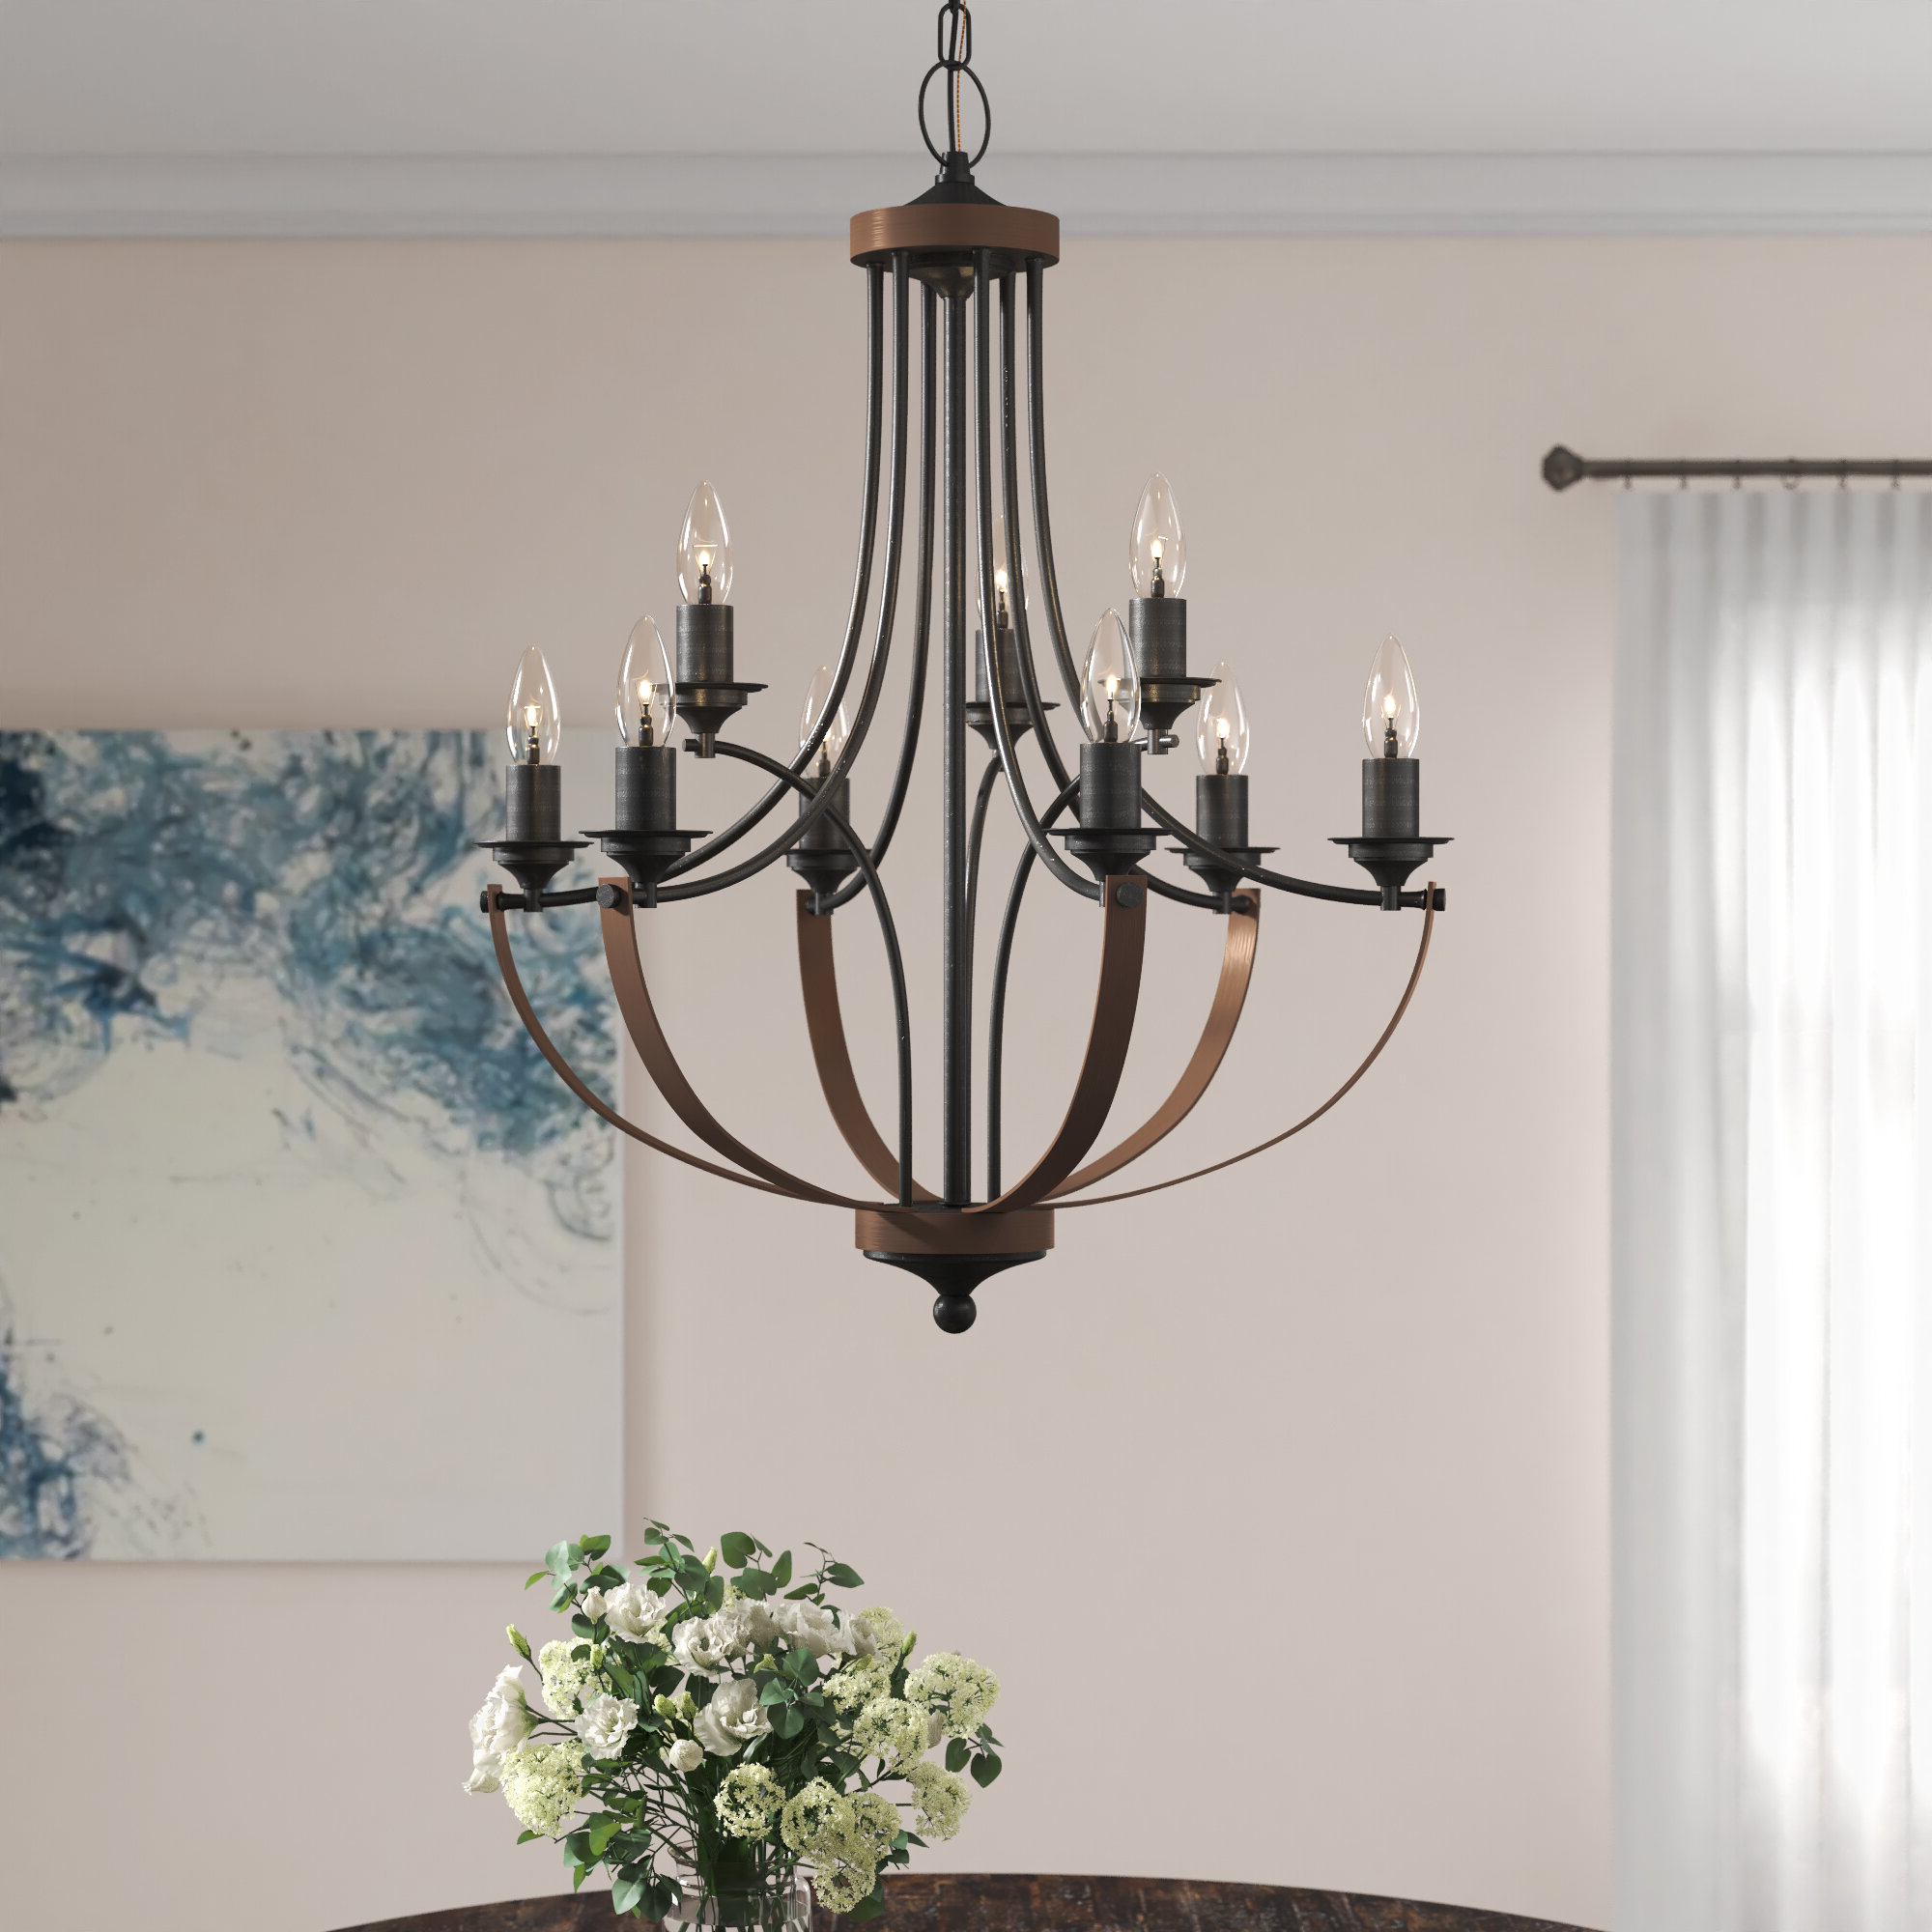 Camilla 9 Light Candle Style Chandelier With Regard To Well Known Camilla 9 Light Candle Style Chandeliers (View 4 of 20)